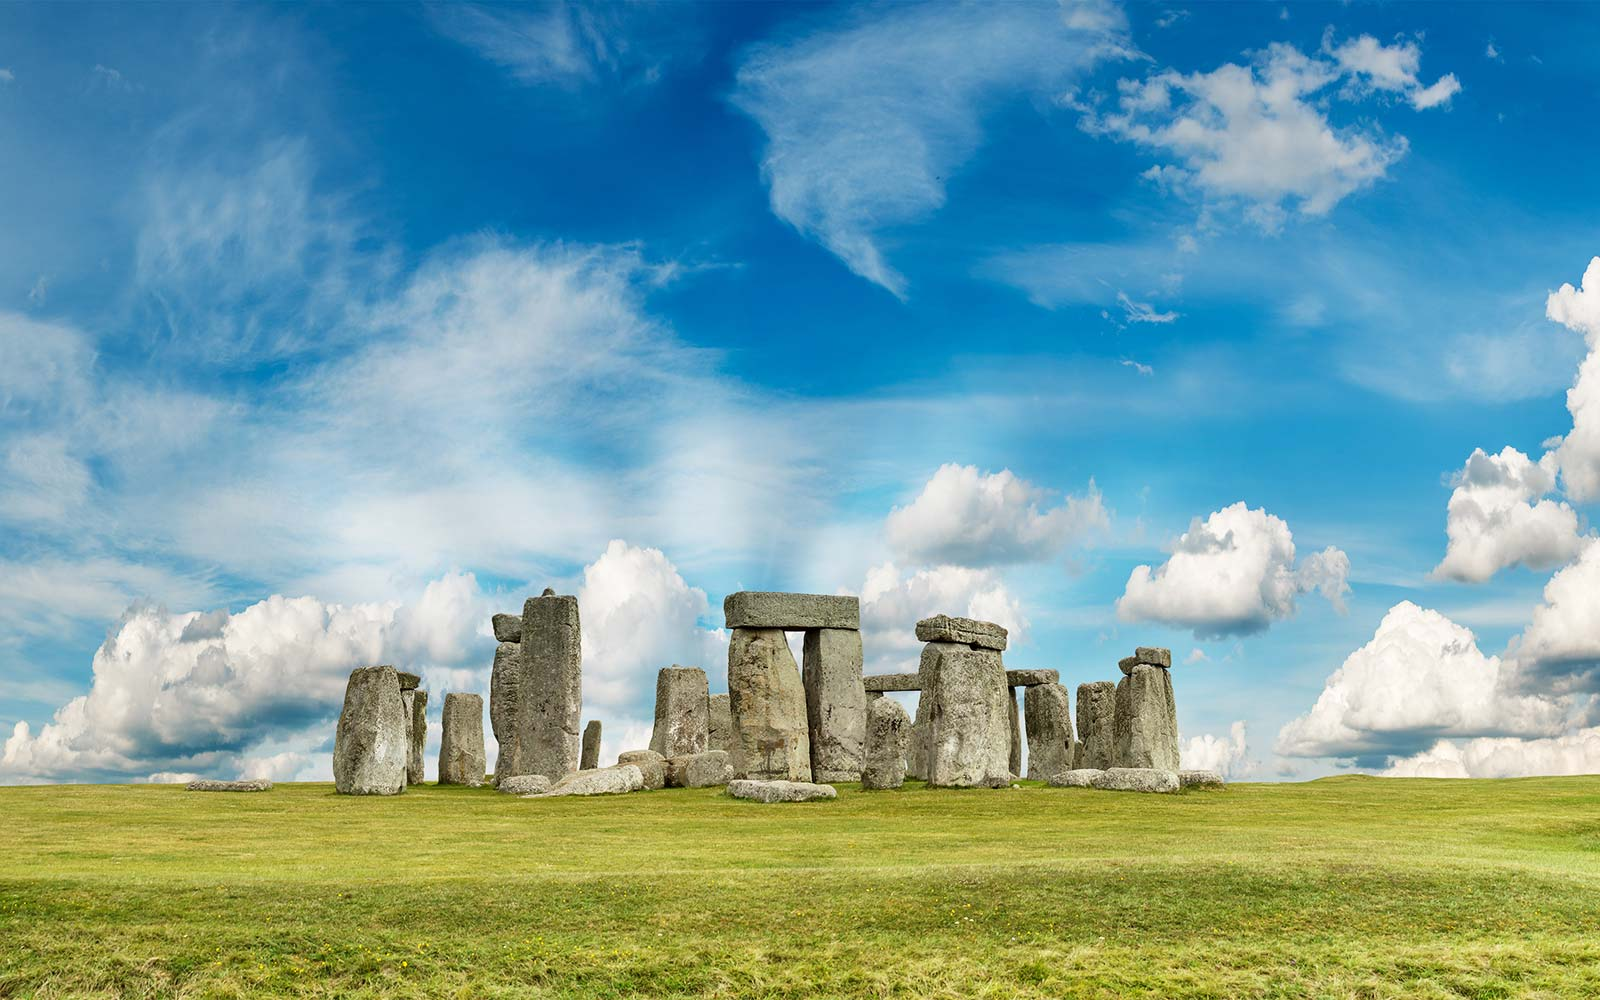 Photos of Stonehenge That Will Have You Booking a Trip to England